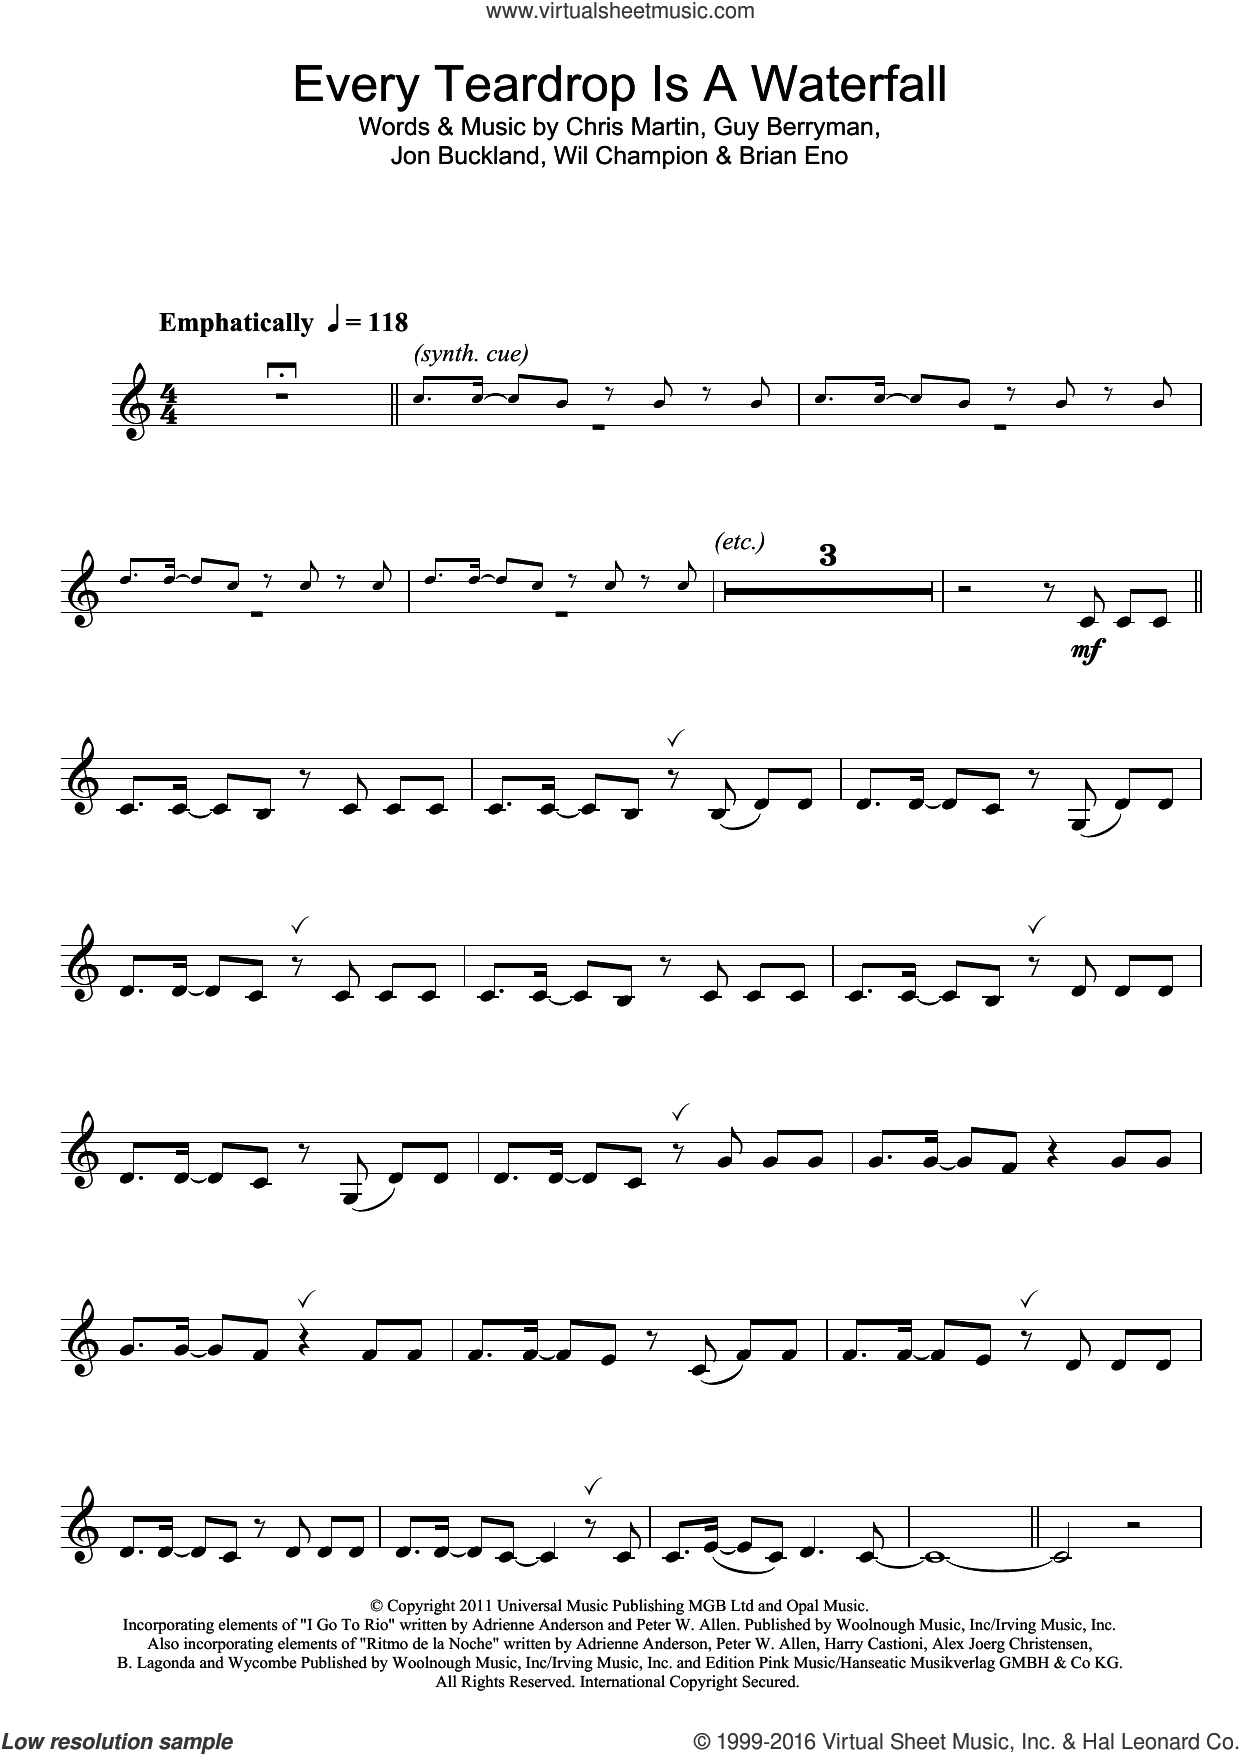 Every Teardrop Is A Waterfall sheet music for clarinet solo by Coldplay, Adrienne Anderson, Brian Eno, Chris Martin, Guy Berryman, Jonny Buckland, Peter Allen and Will Champion, intermediate skill level